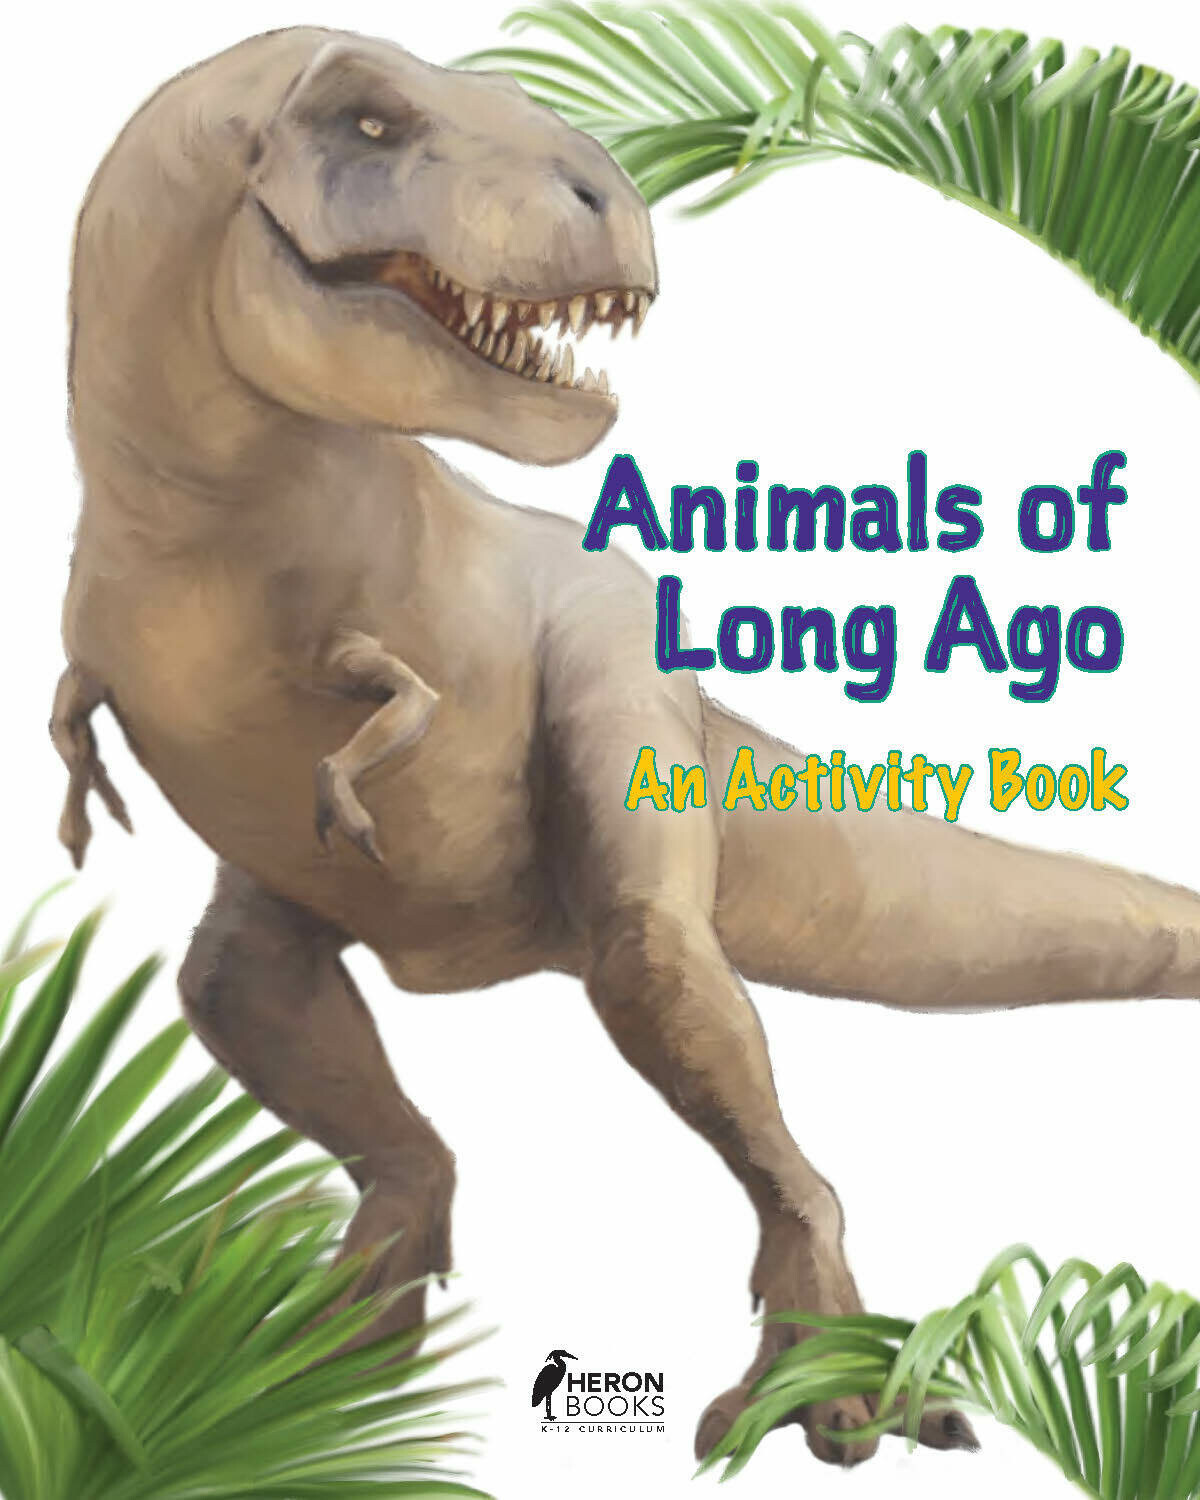 Animals of Long Ago - An Activity Book